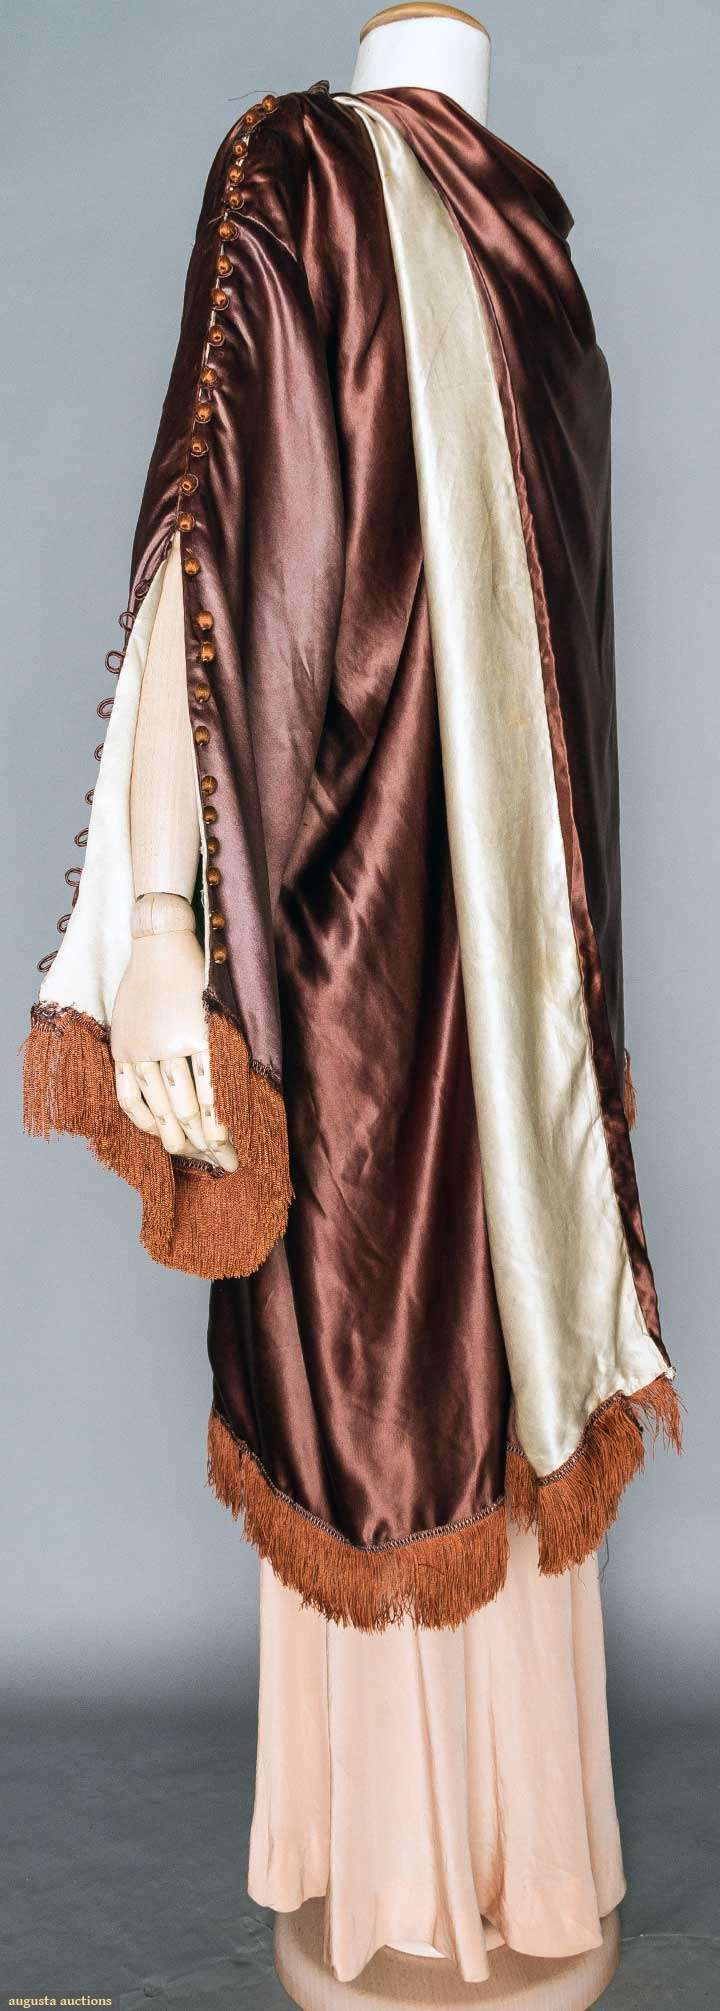 POIRET SILK EVENING WRAP, PARIS, 1917. Unlabeled, the MET & FIT museums have same garment in different color. Eggplant silk charmeuse, white silk charmeuse lining, wide sleeves w/ rust thread ball buttons from shoulders to rust fringed sleeve hem, wide F panel wraps over right shoulder, 2 fringed tabs fall to back at shoulders. Sideway